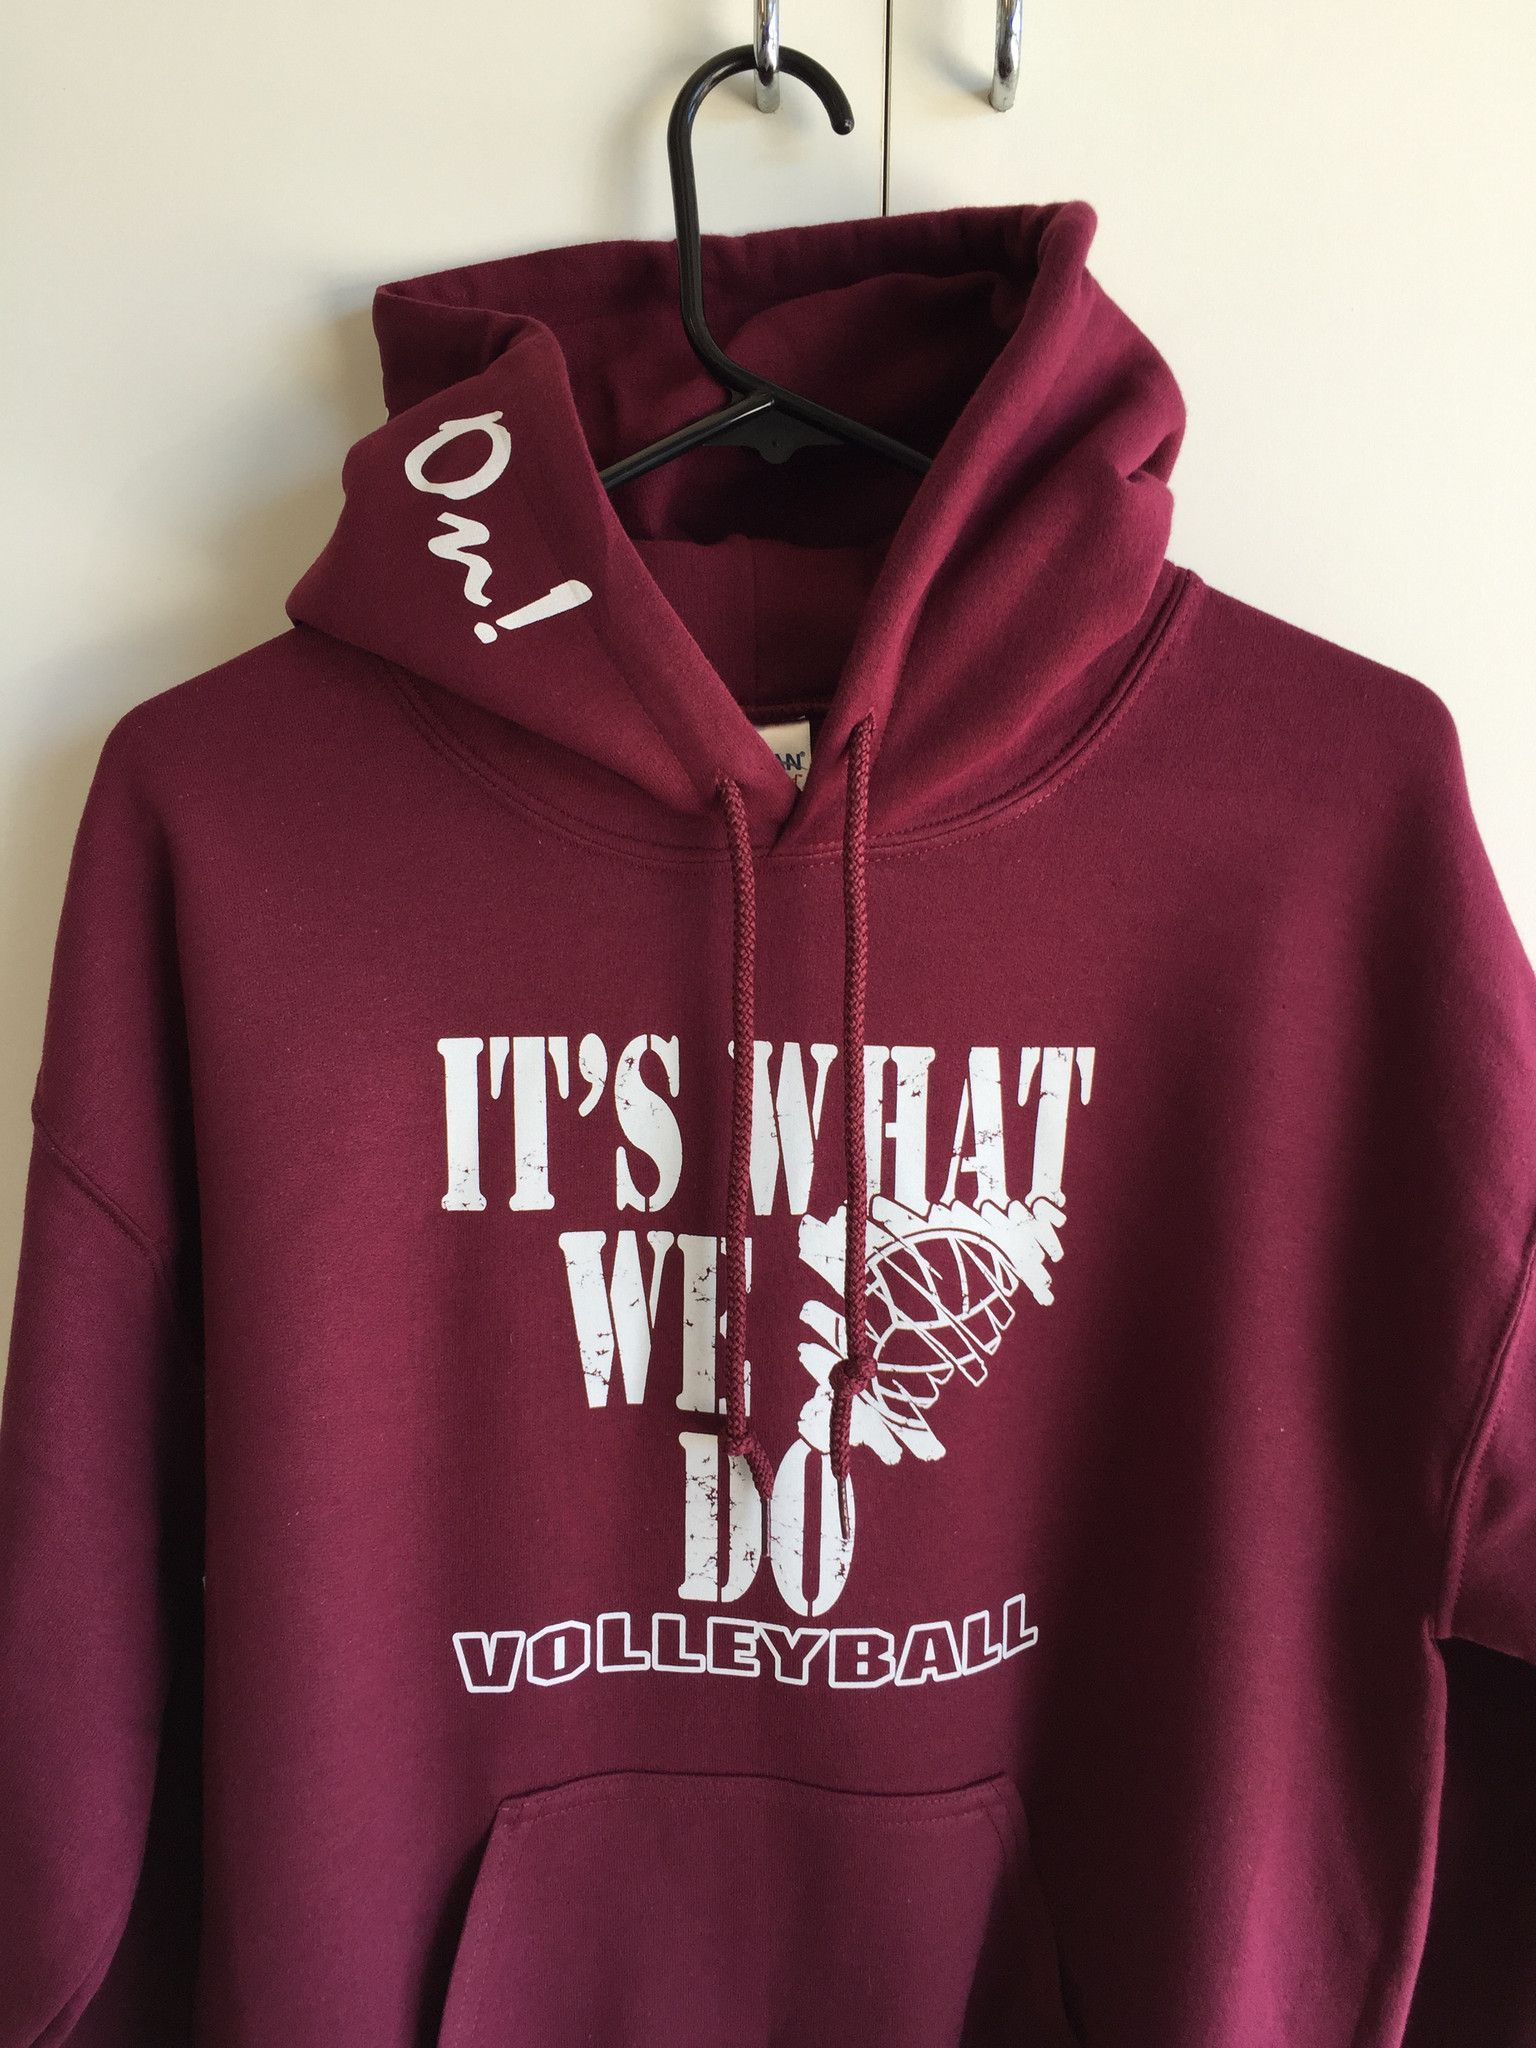 It S What We Do Volleyball Hooded Sweatshirt Volleyball Sweatshirts Volleyball Hooded Sweatshirts